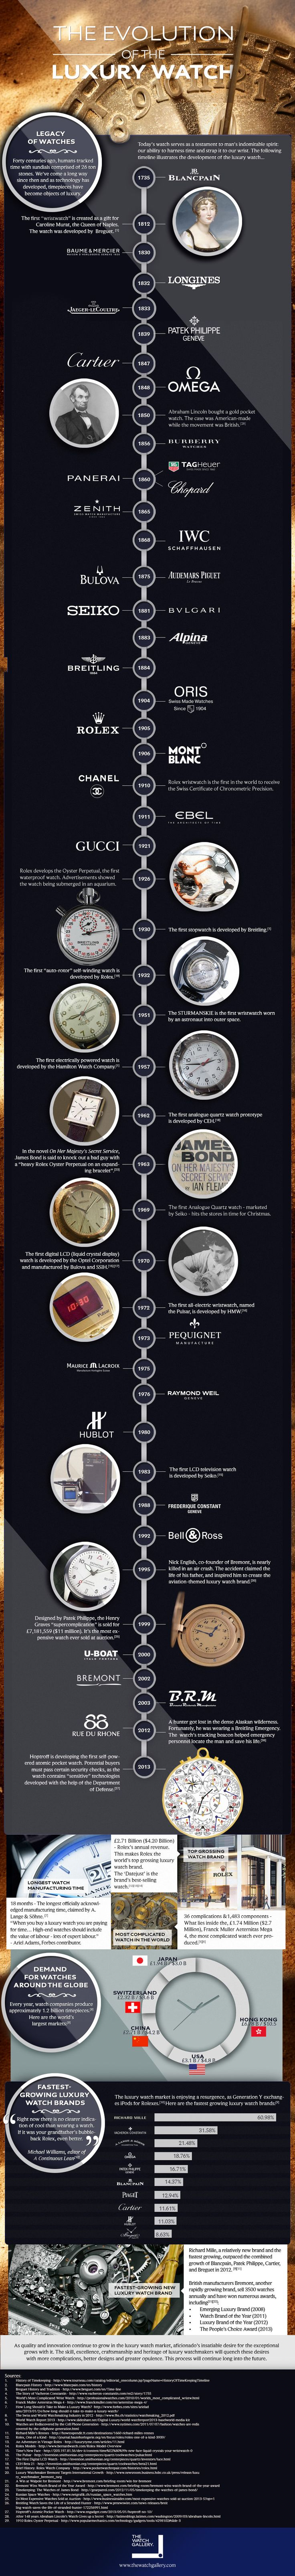 Evolution of the Luxury Watch evolución del reloj de diseñador.